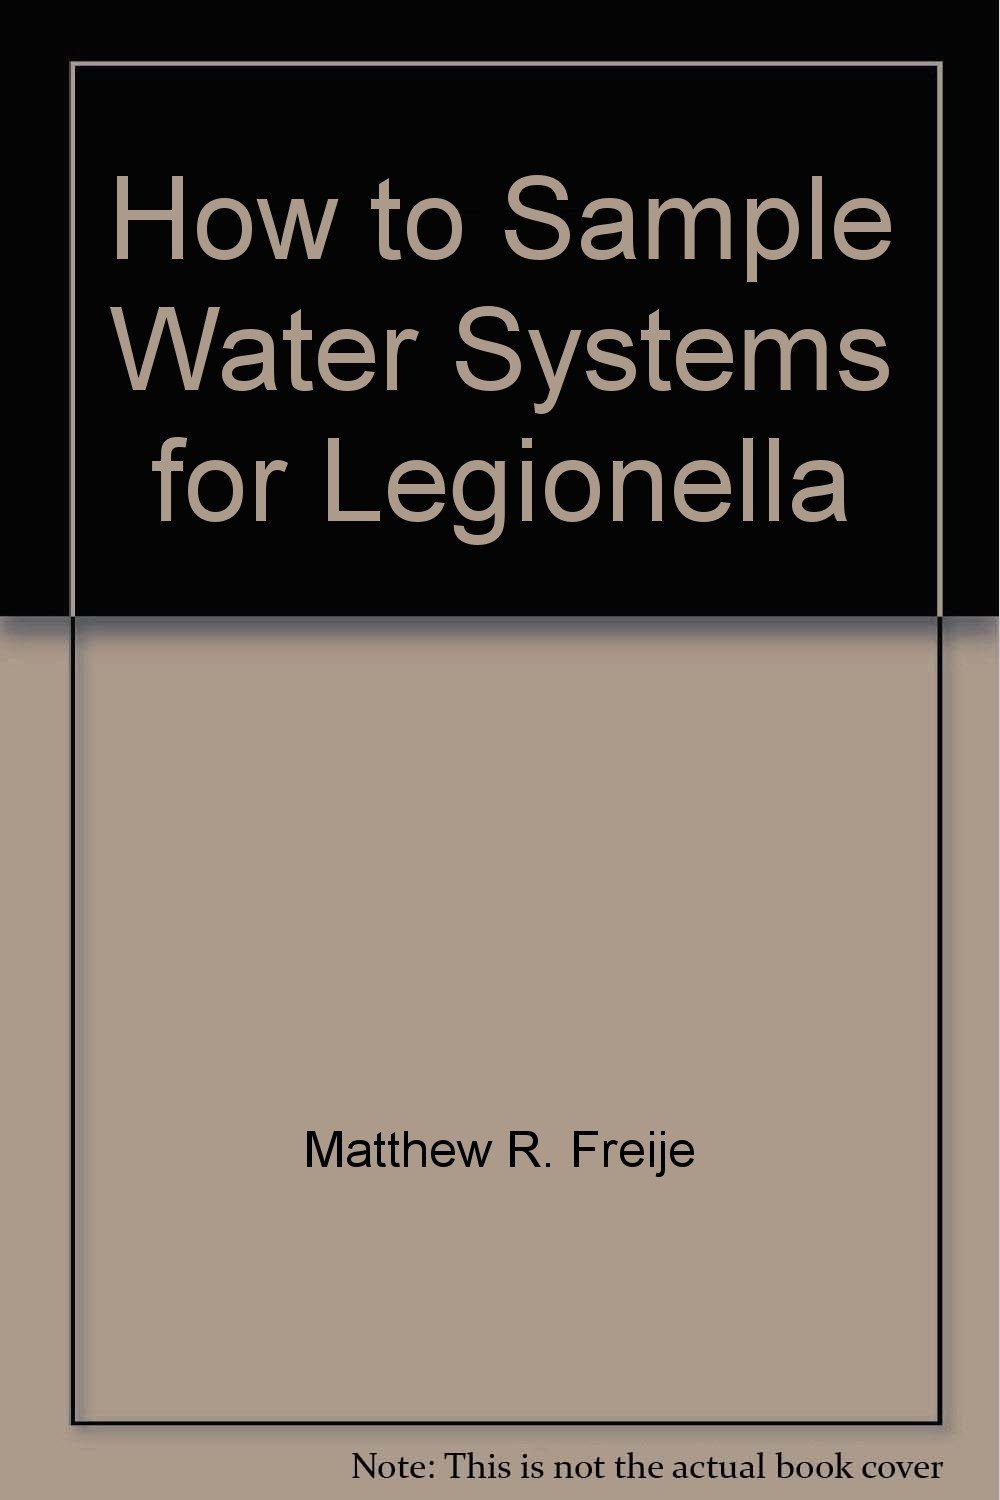 How to Sample Water Systems for Legionella: Matthew R